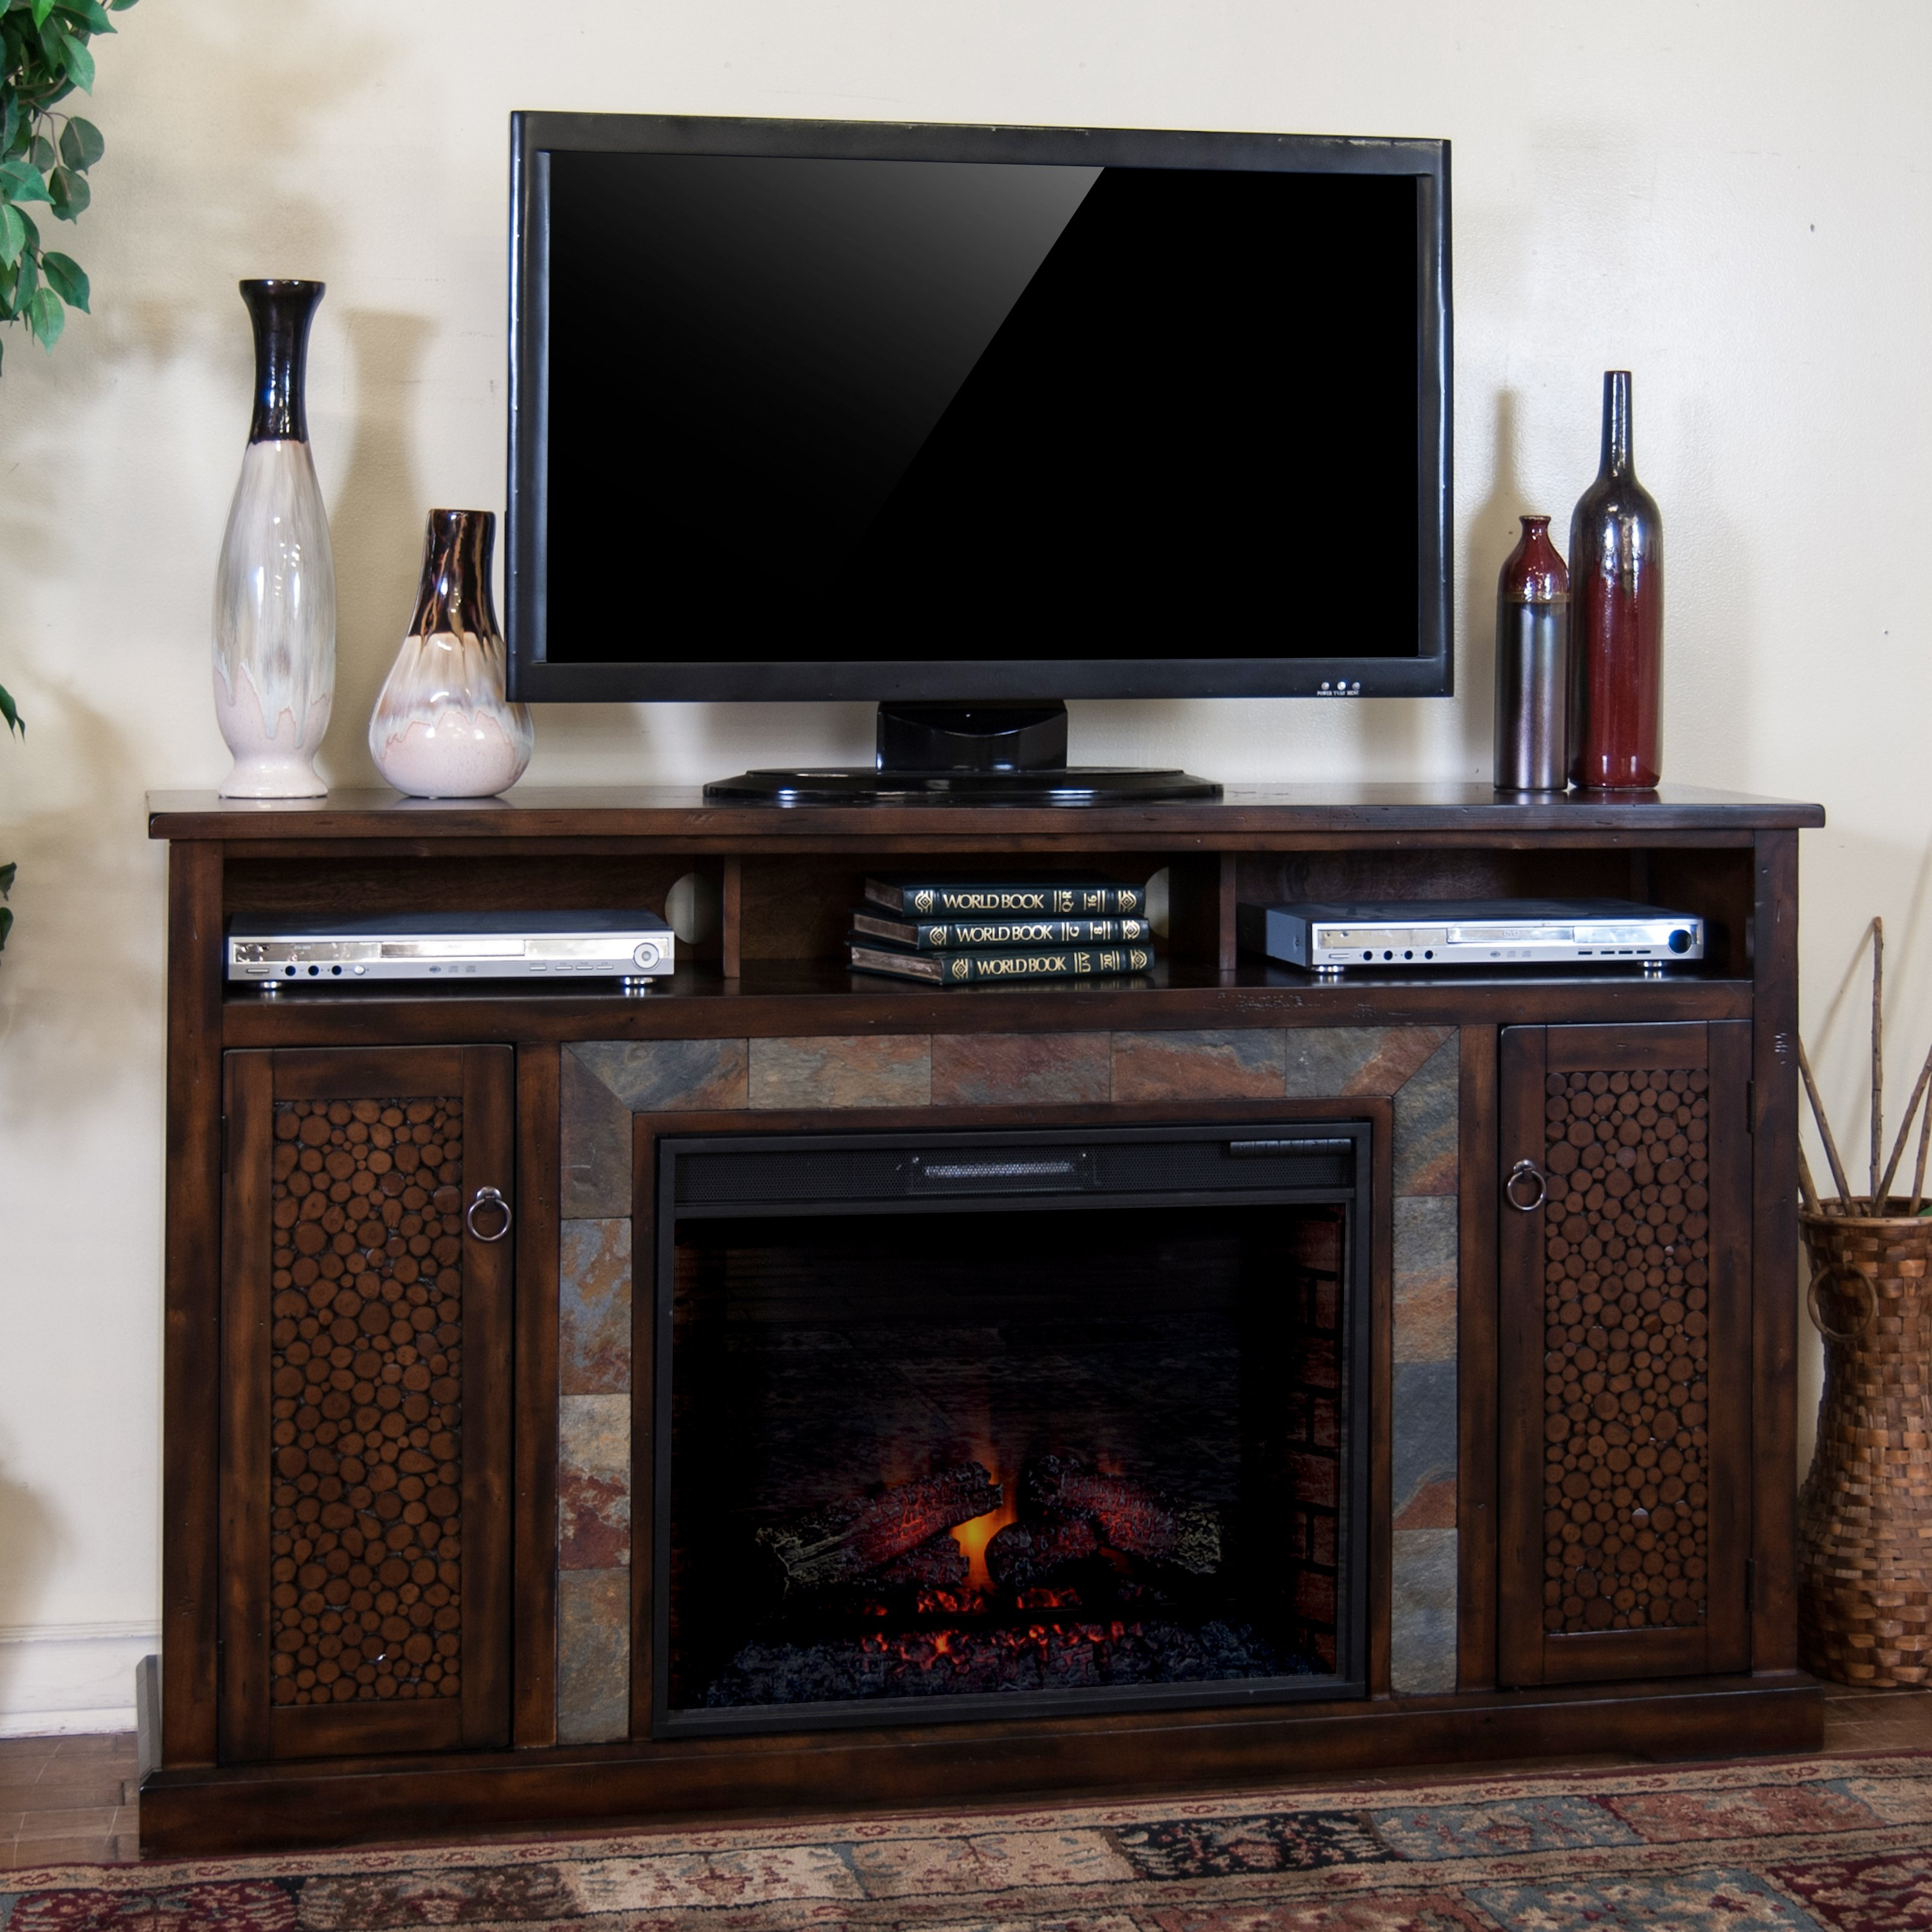 Sunny Designs Santa Fe 66 in. Electric Fireplace Media Console